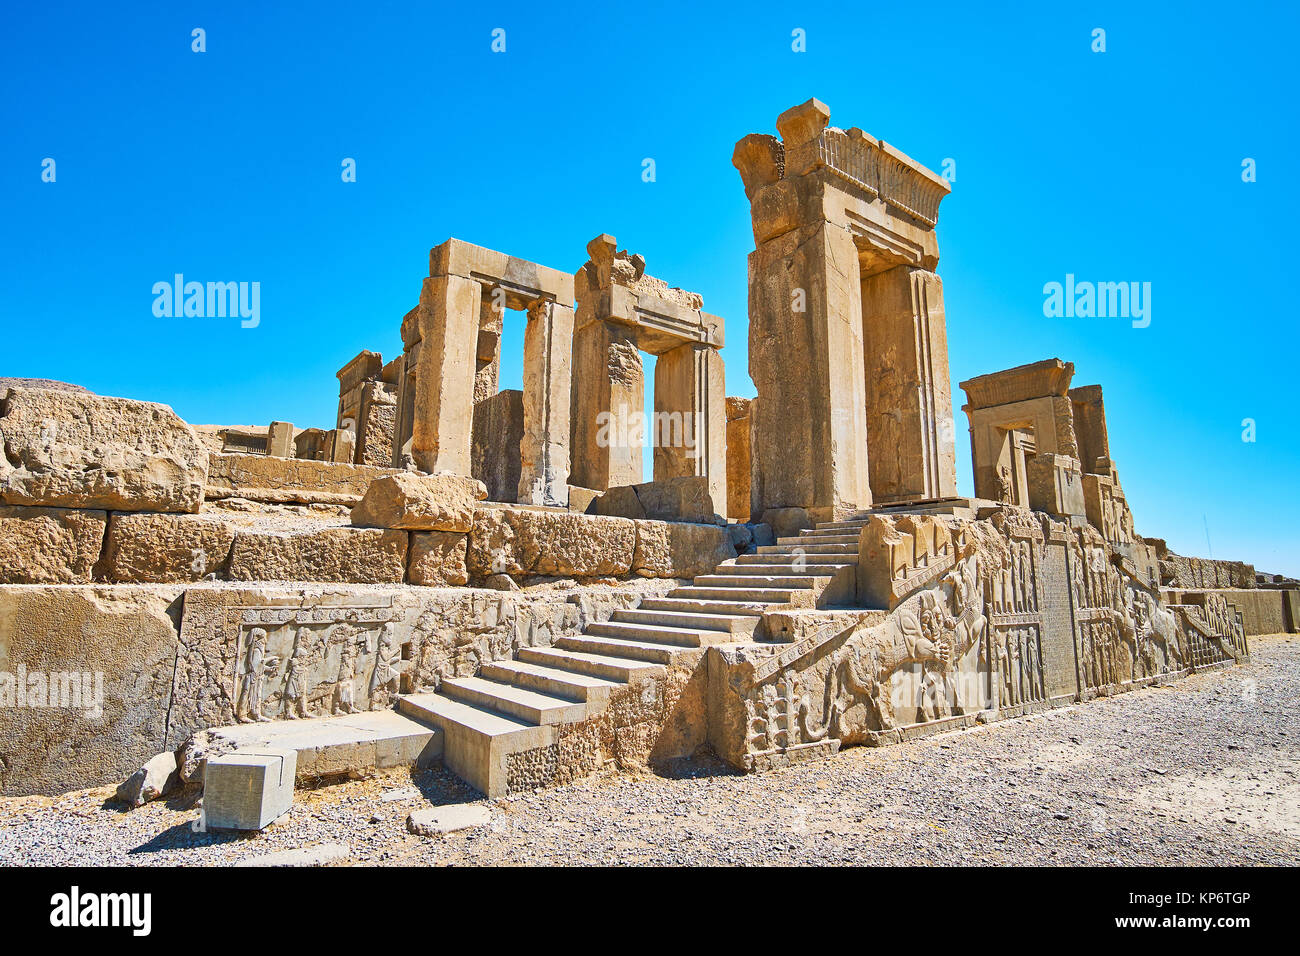 The masterpiece relief on the facade wall of the staircase of Tachara palace (winter palace) in Persepolis archaeological - Stock Image